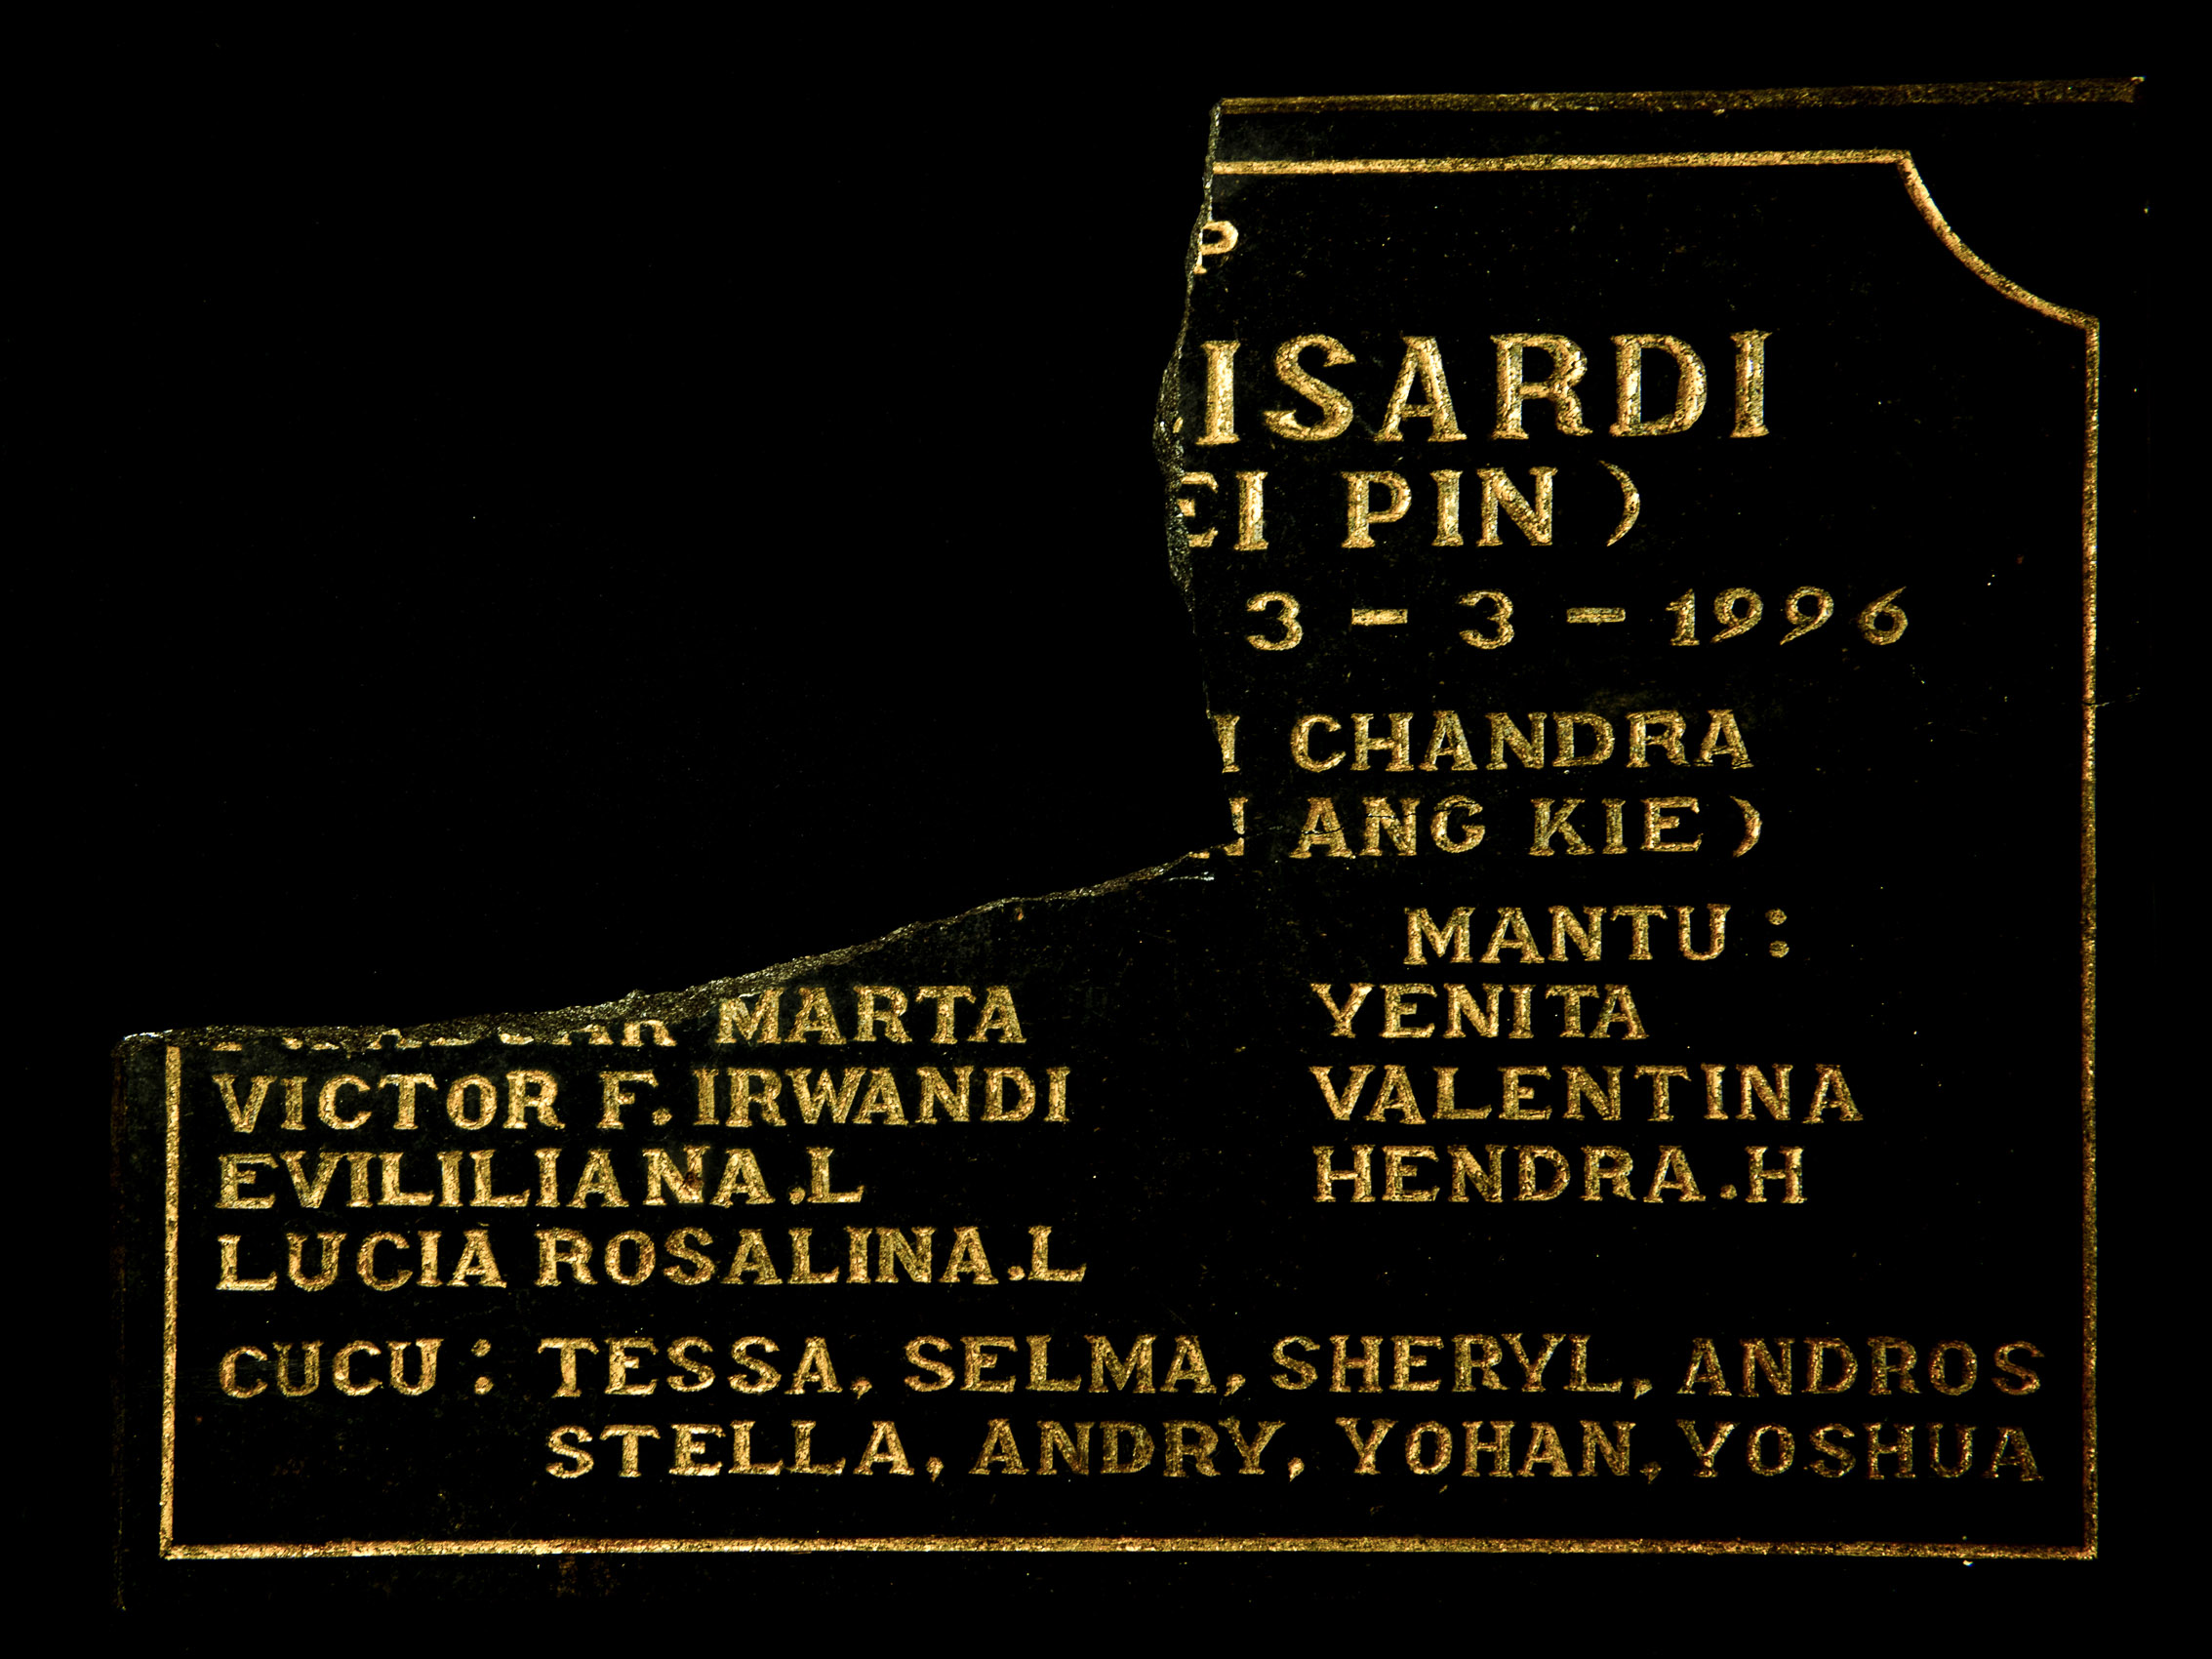 Lie Soei Pin's Tombstone